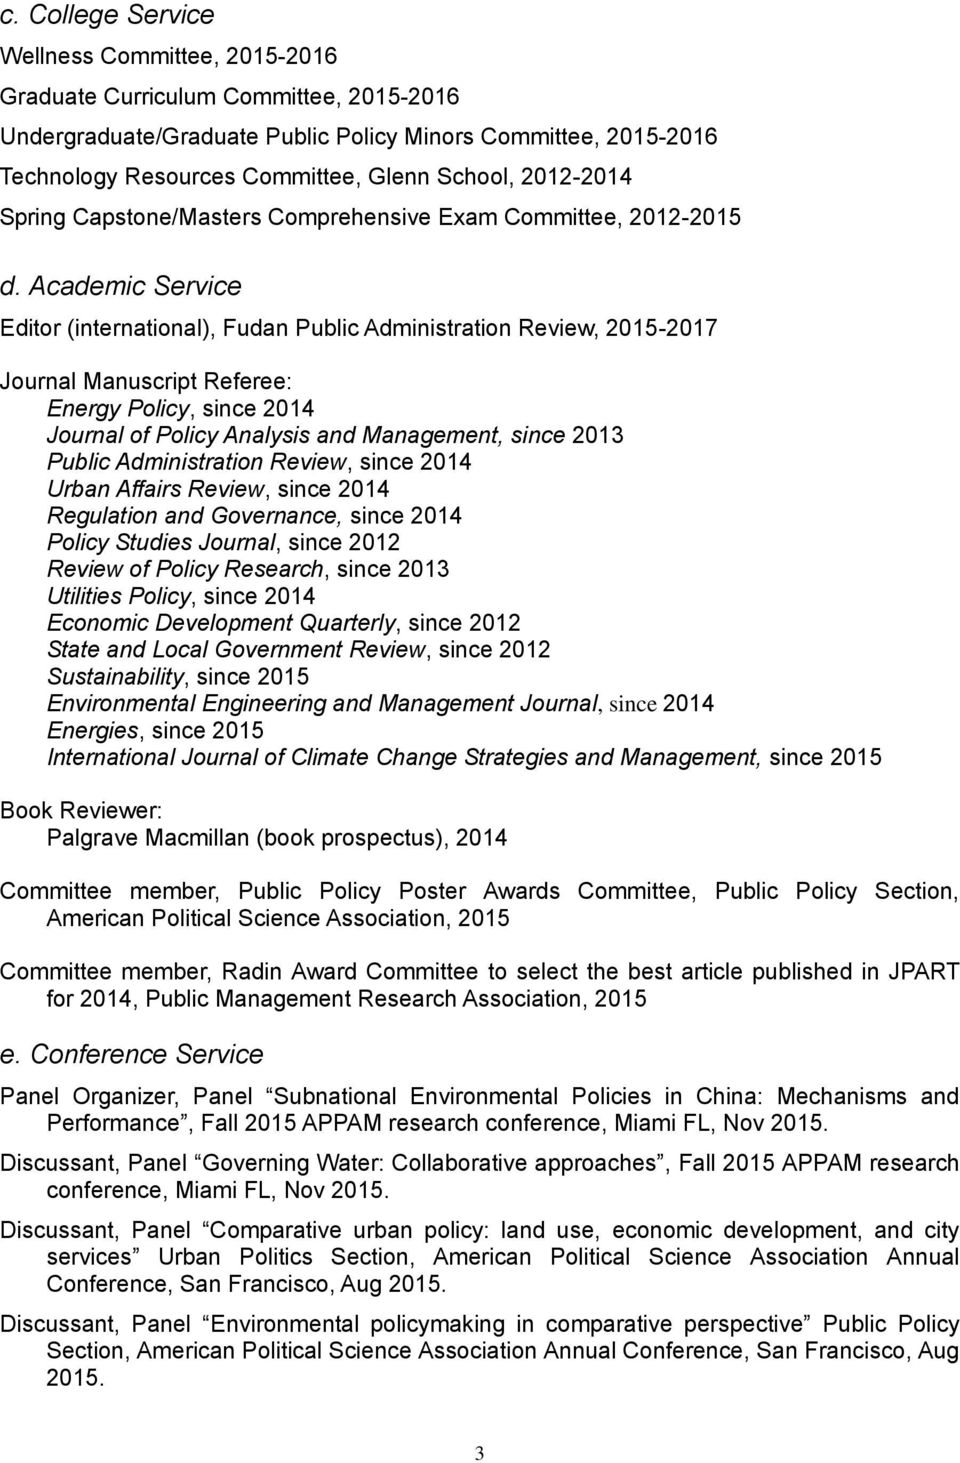 Academic Service Editor (international), Fudan Public Administration Review, 2015-2017 Journal Manuscript Referee: Energy Policy, since 2014 Journal of Policy Analysis and Management, since 2013